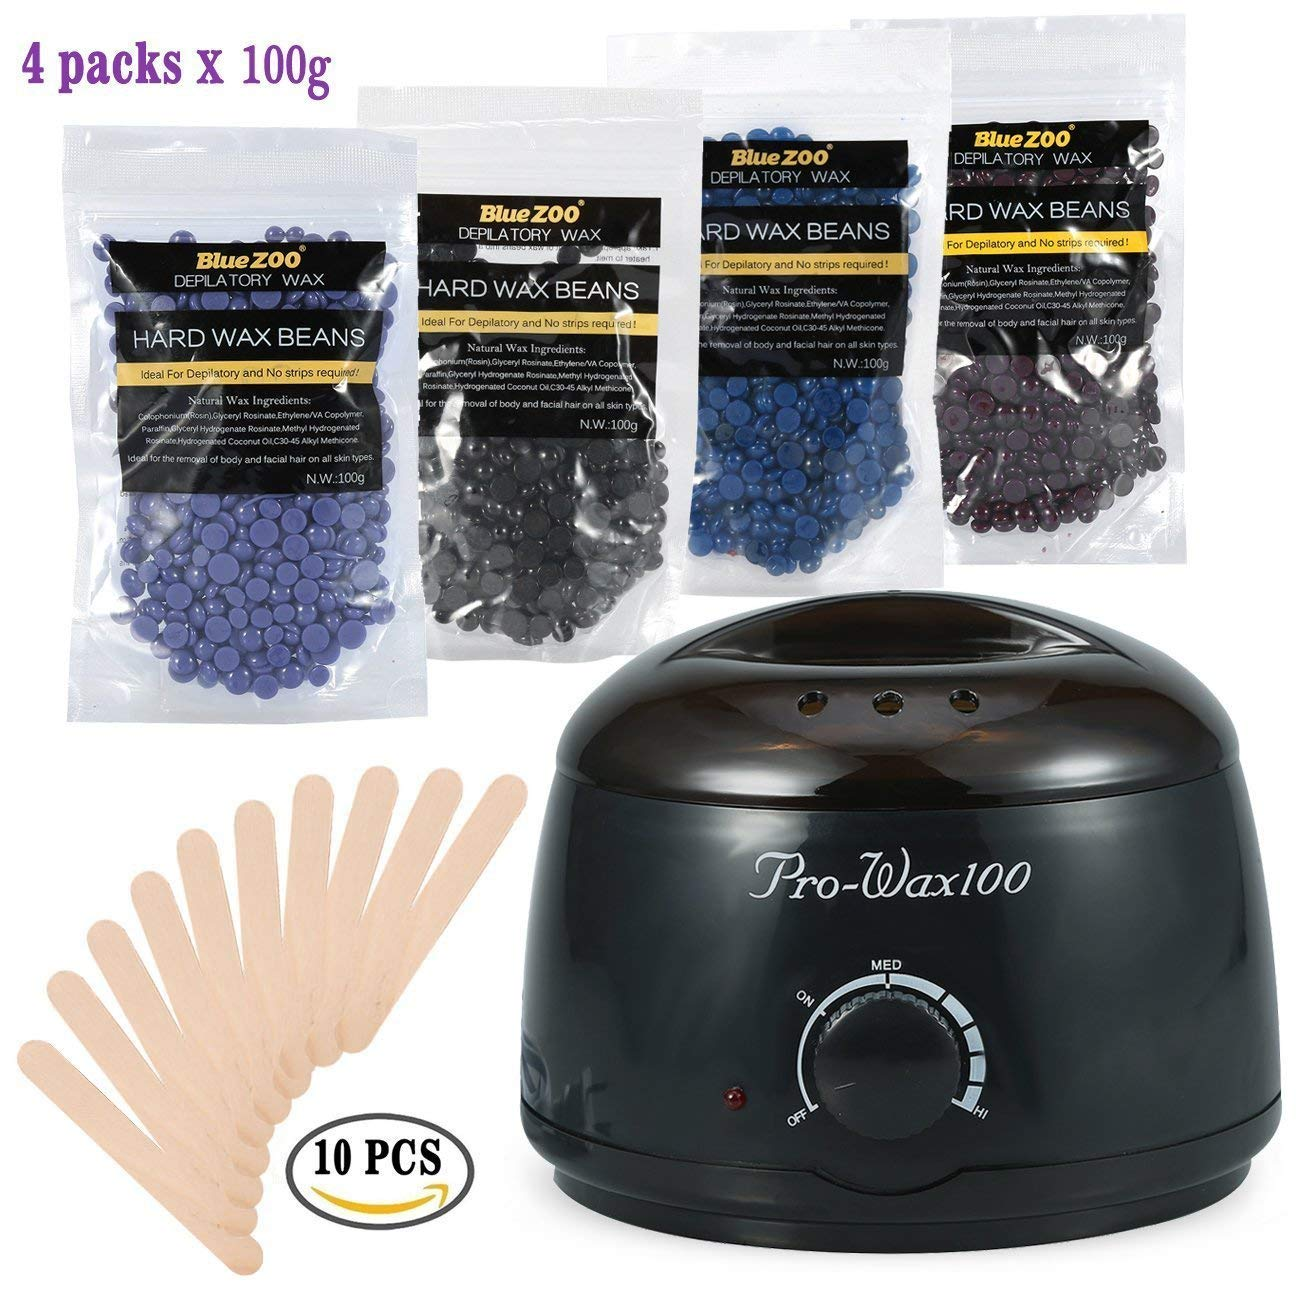 ZJchao Wax Warmer Hair Removal, Hand Warmers Professional and Fast Wax Heater for Wax Types (Hard, soft, Paraffin) Thermostatically Controlled, with Adjustable Temperature Black